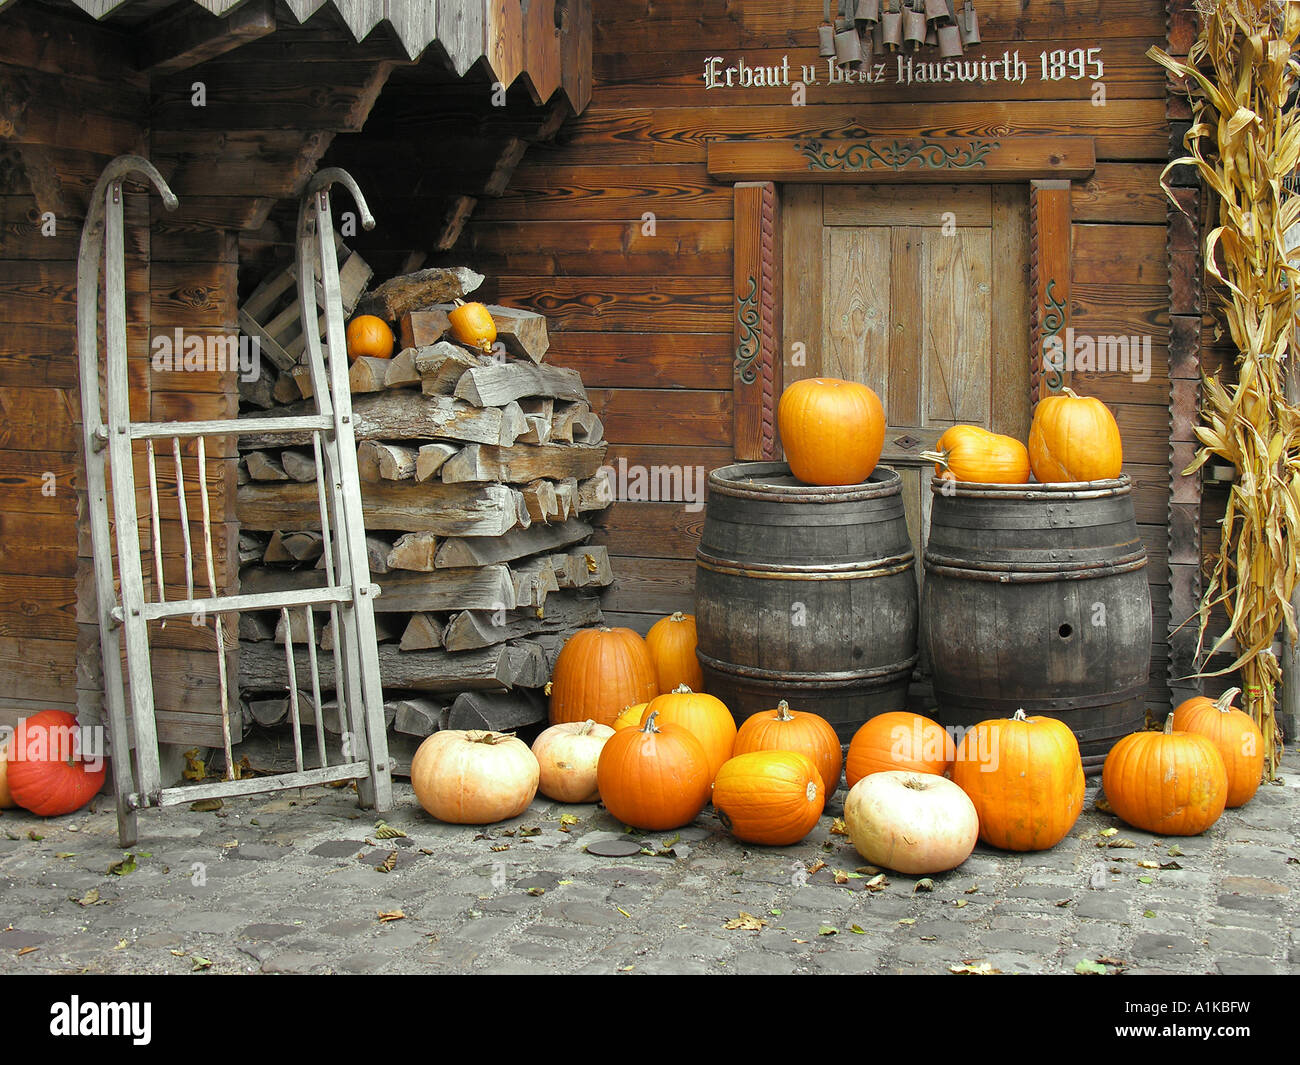 Autumnal decorations in the Switzerland area, Europapark Rust, Baden-Wuerttemberg, Germany - Stock Image